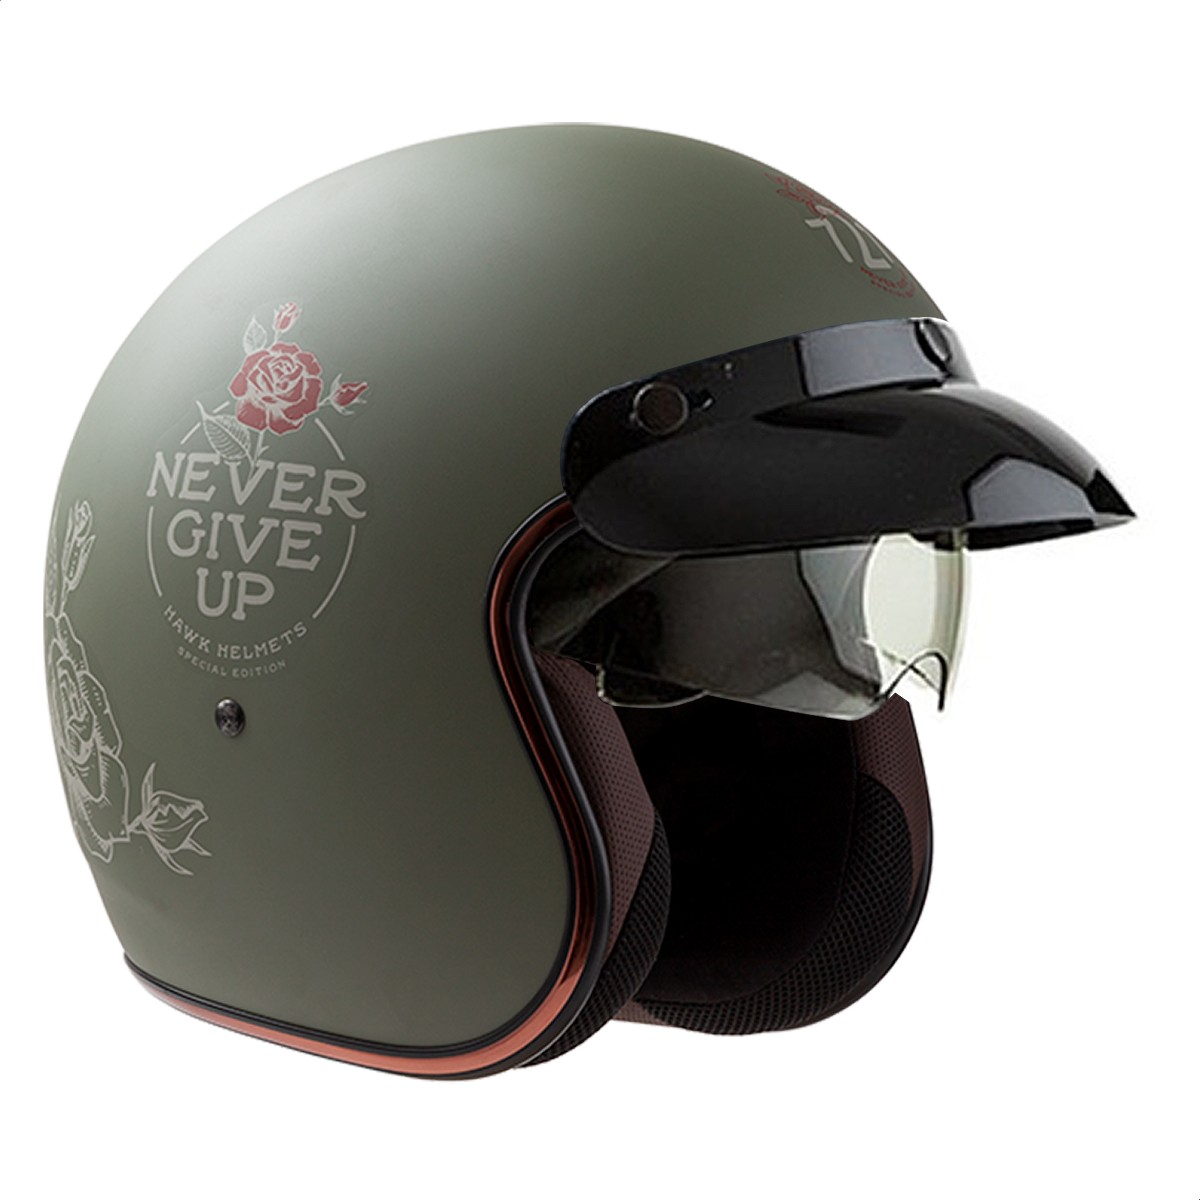 copy of Casco Abierto Hawk 721 Never Give Up